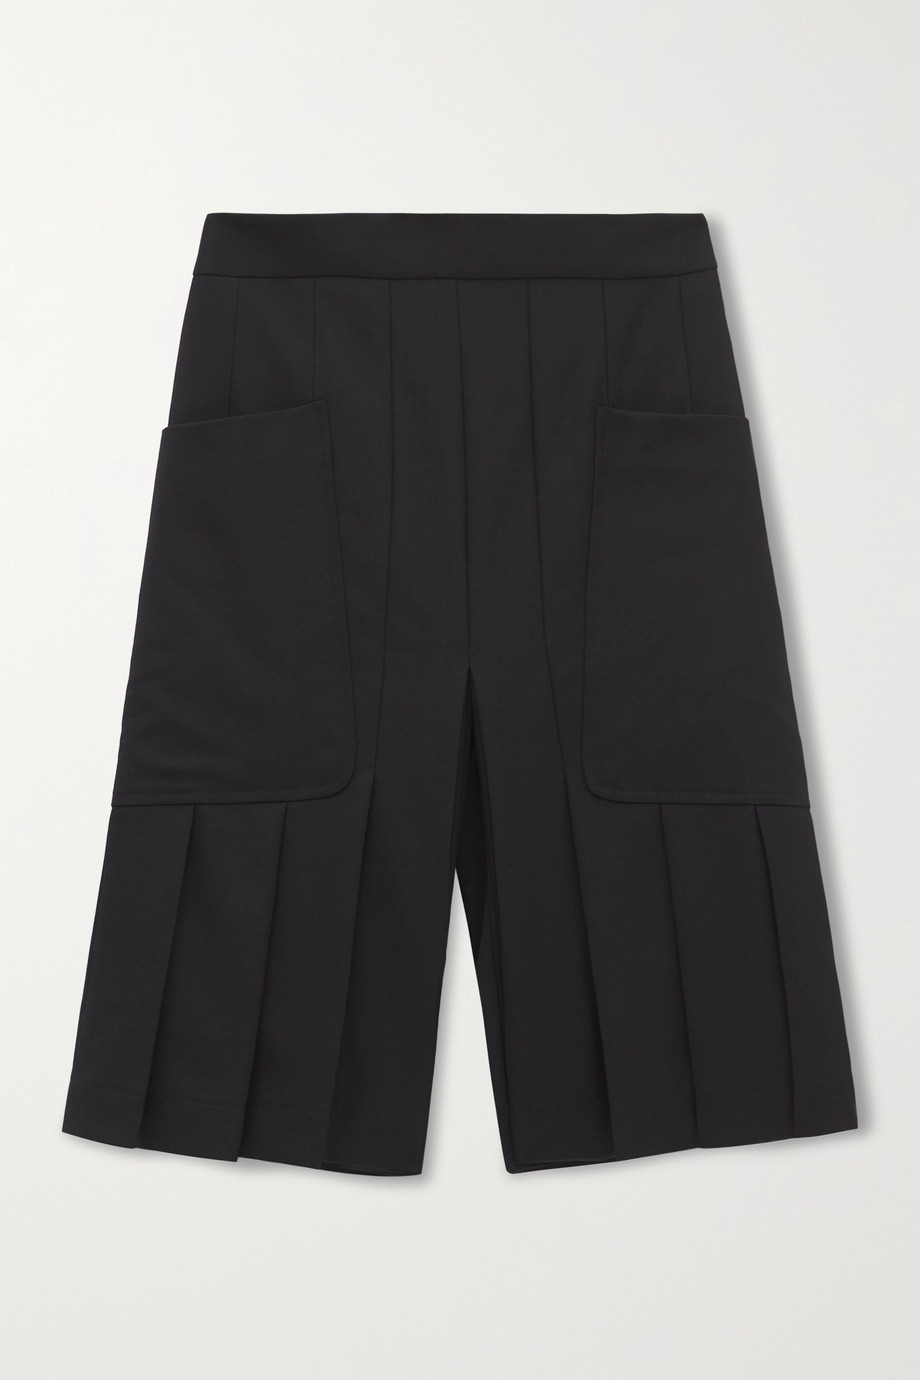 Victoria Beckham Pleated wool shorts